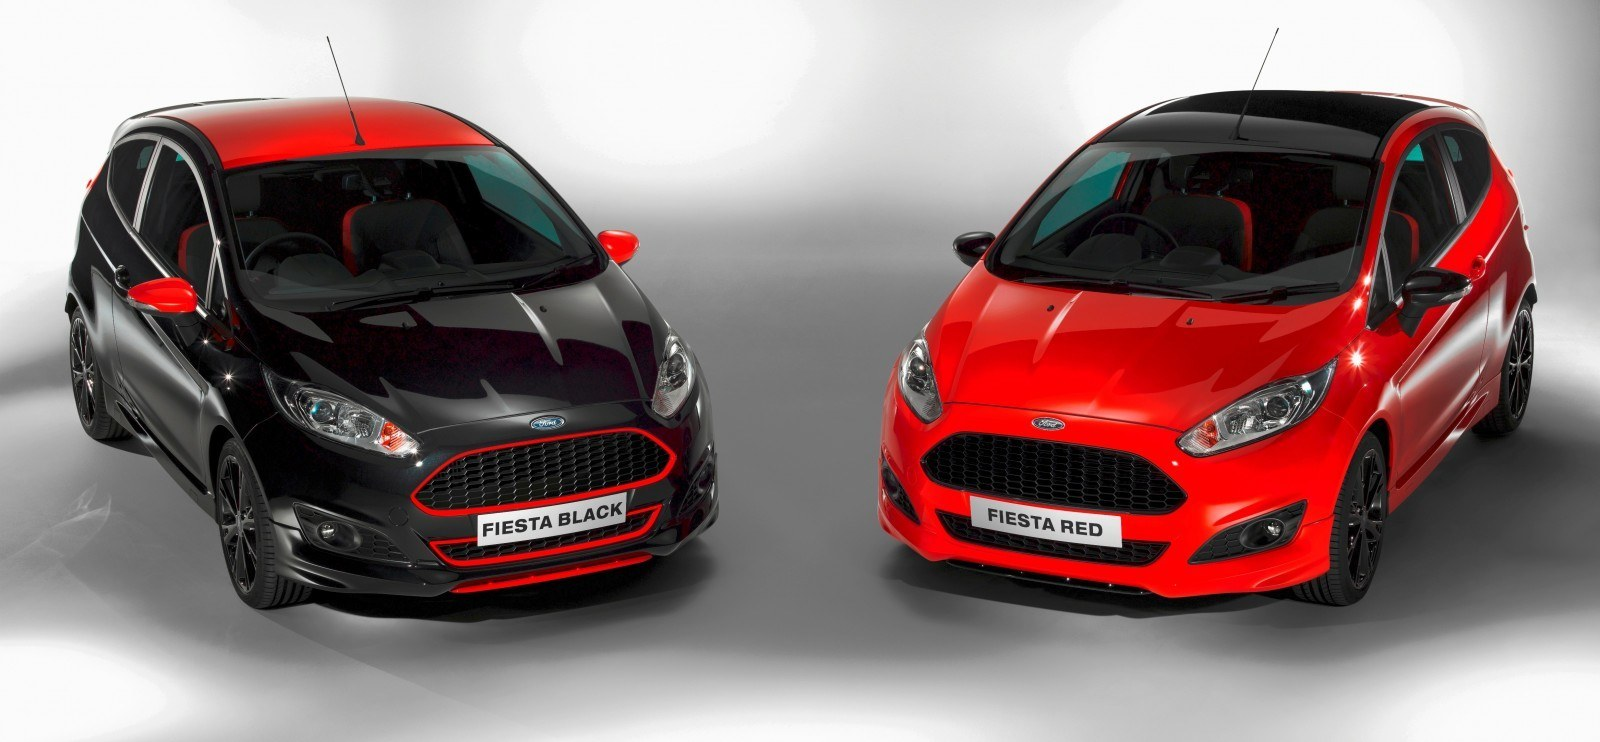 2014 Ford Fiesta Red Edition and Fiesta Black Edition Announced for UK 4